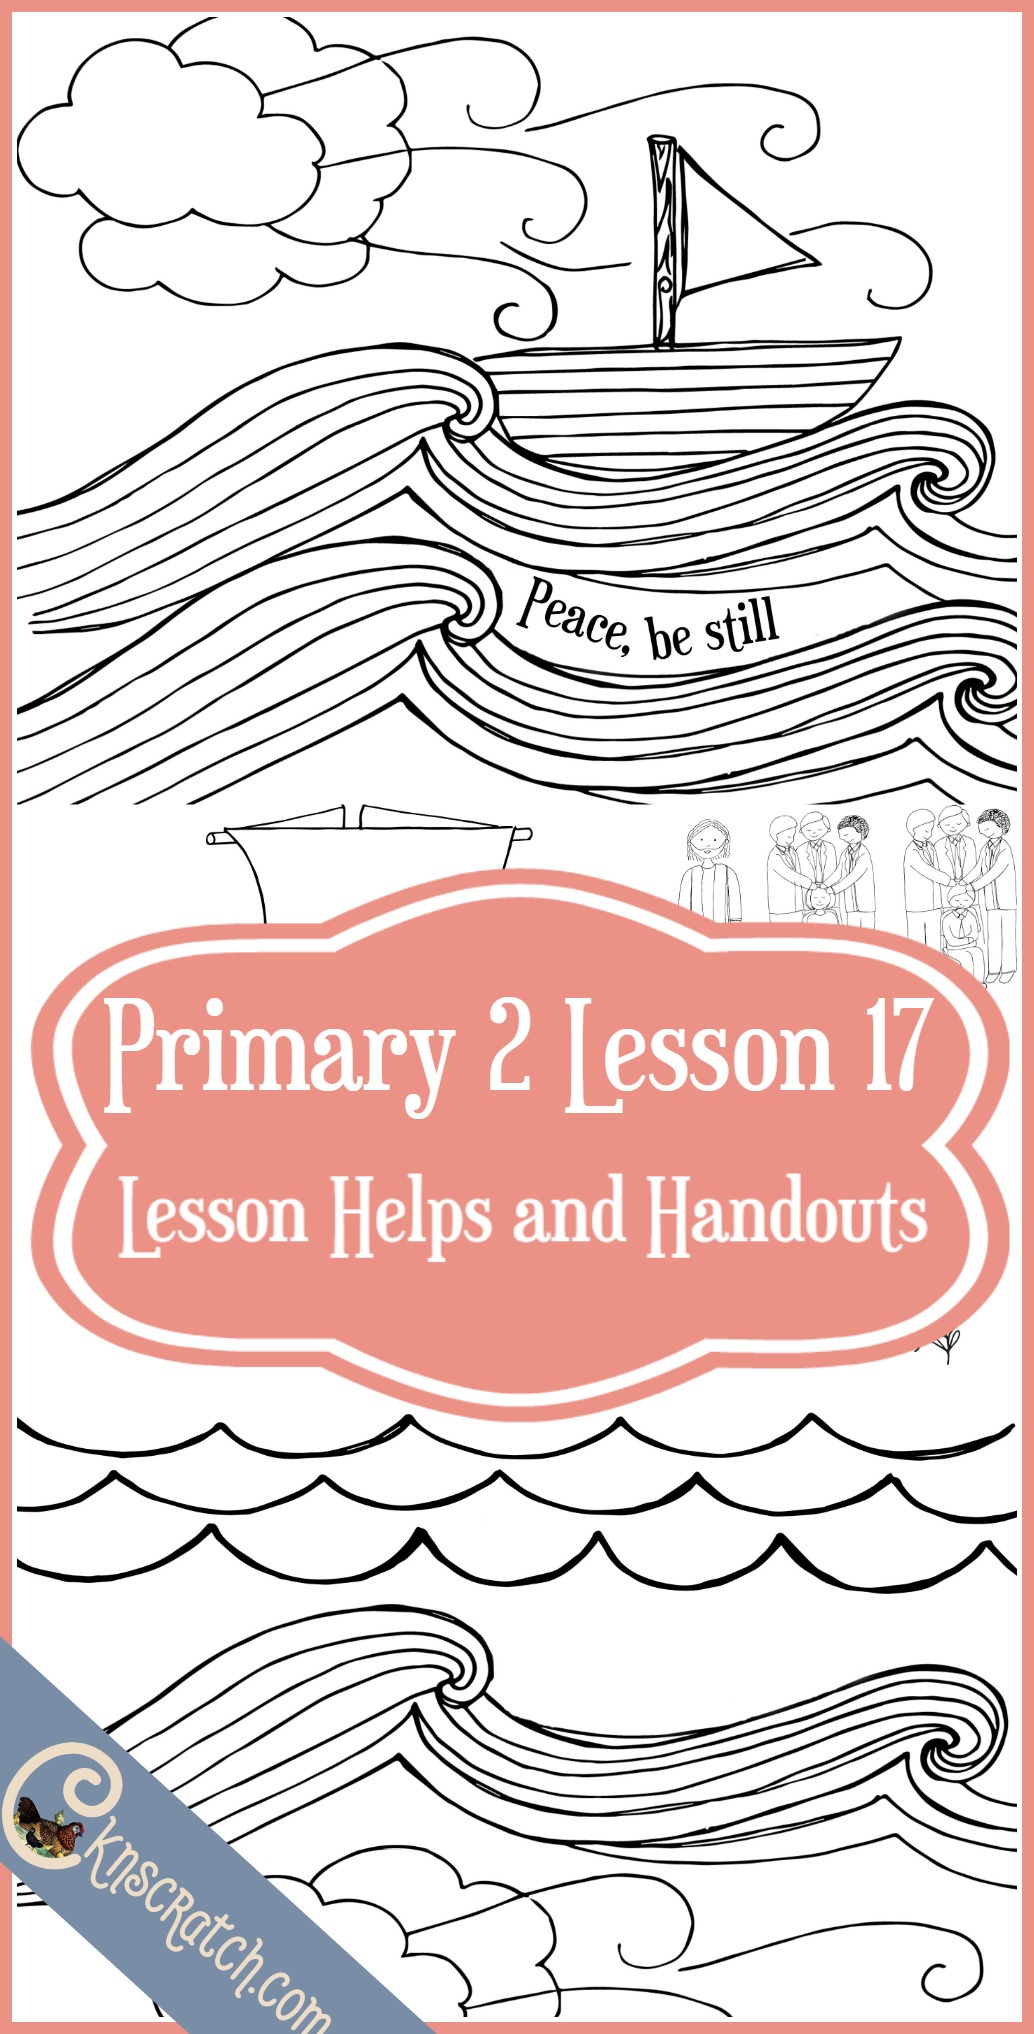 Oh I love this- LDS handouts and lesson helps for Primary 2 Lesson 17- The Priesthood helps me